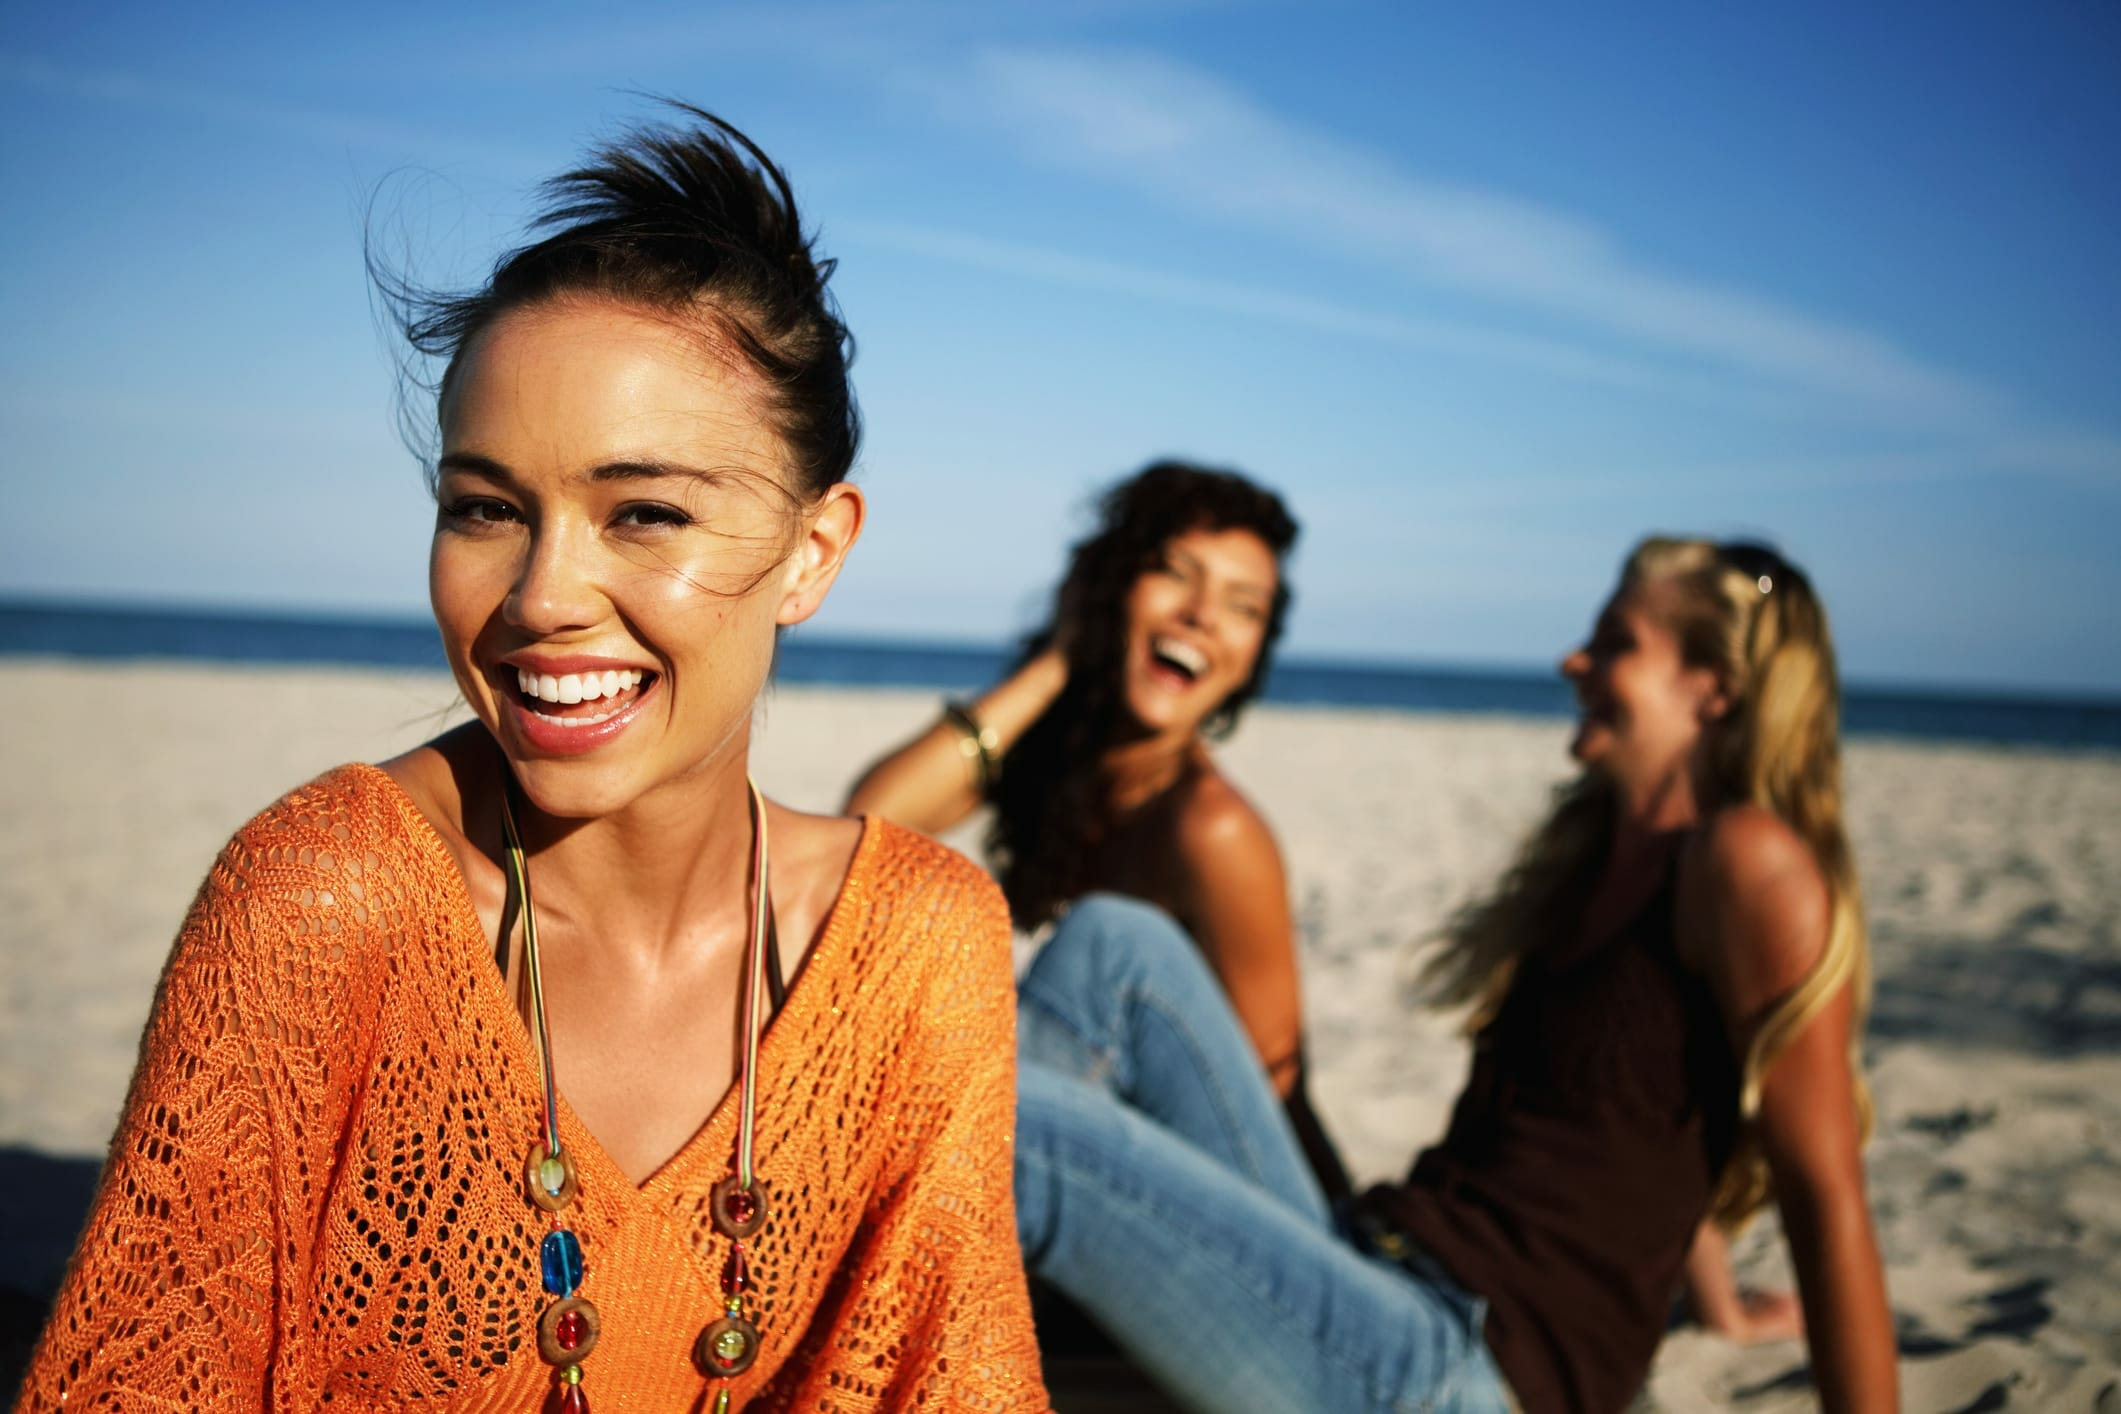 smiling woman in orange at the beach relaxing with friends who made the decision to rent vs. buy a house